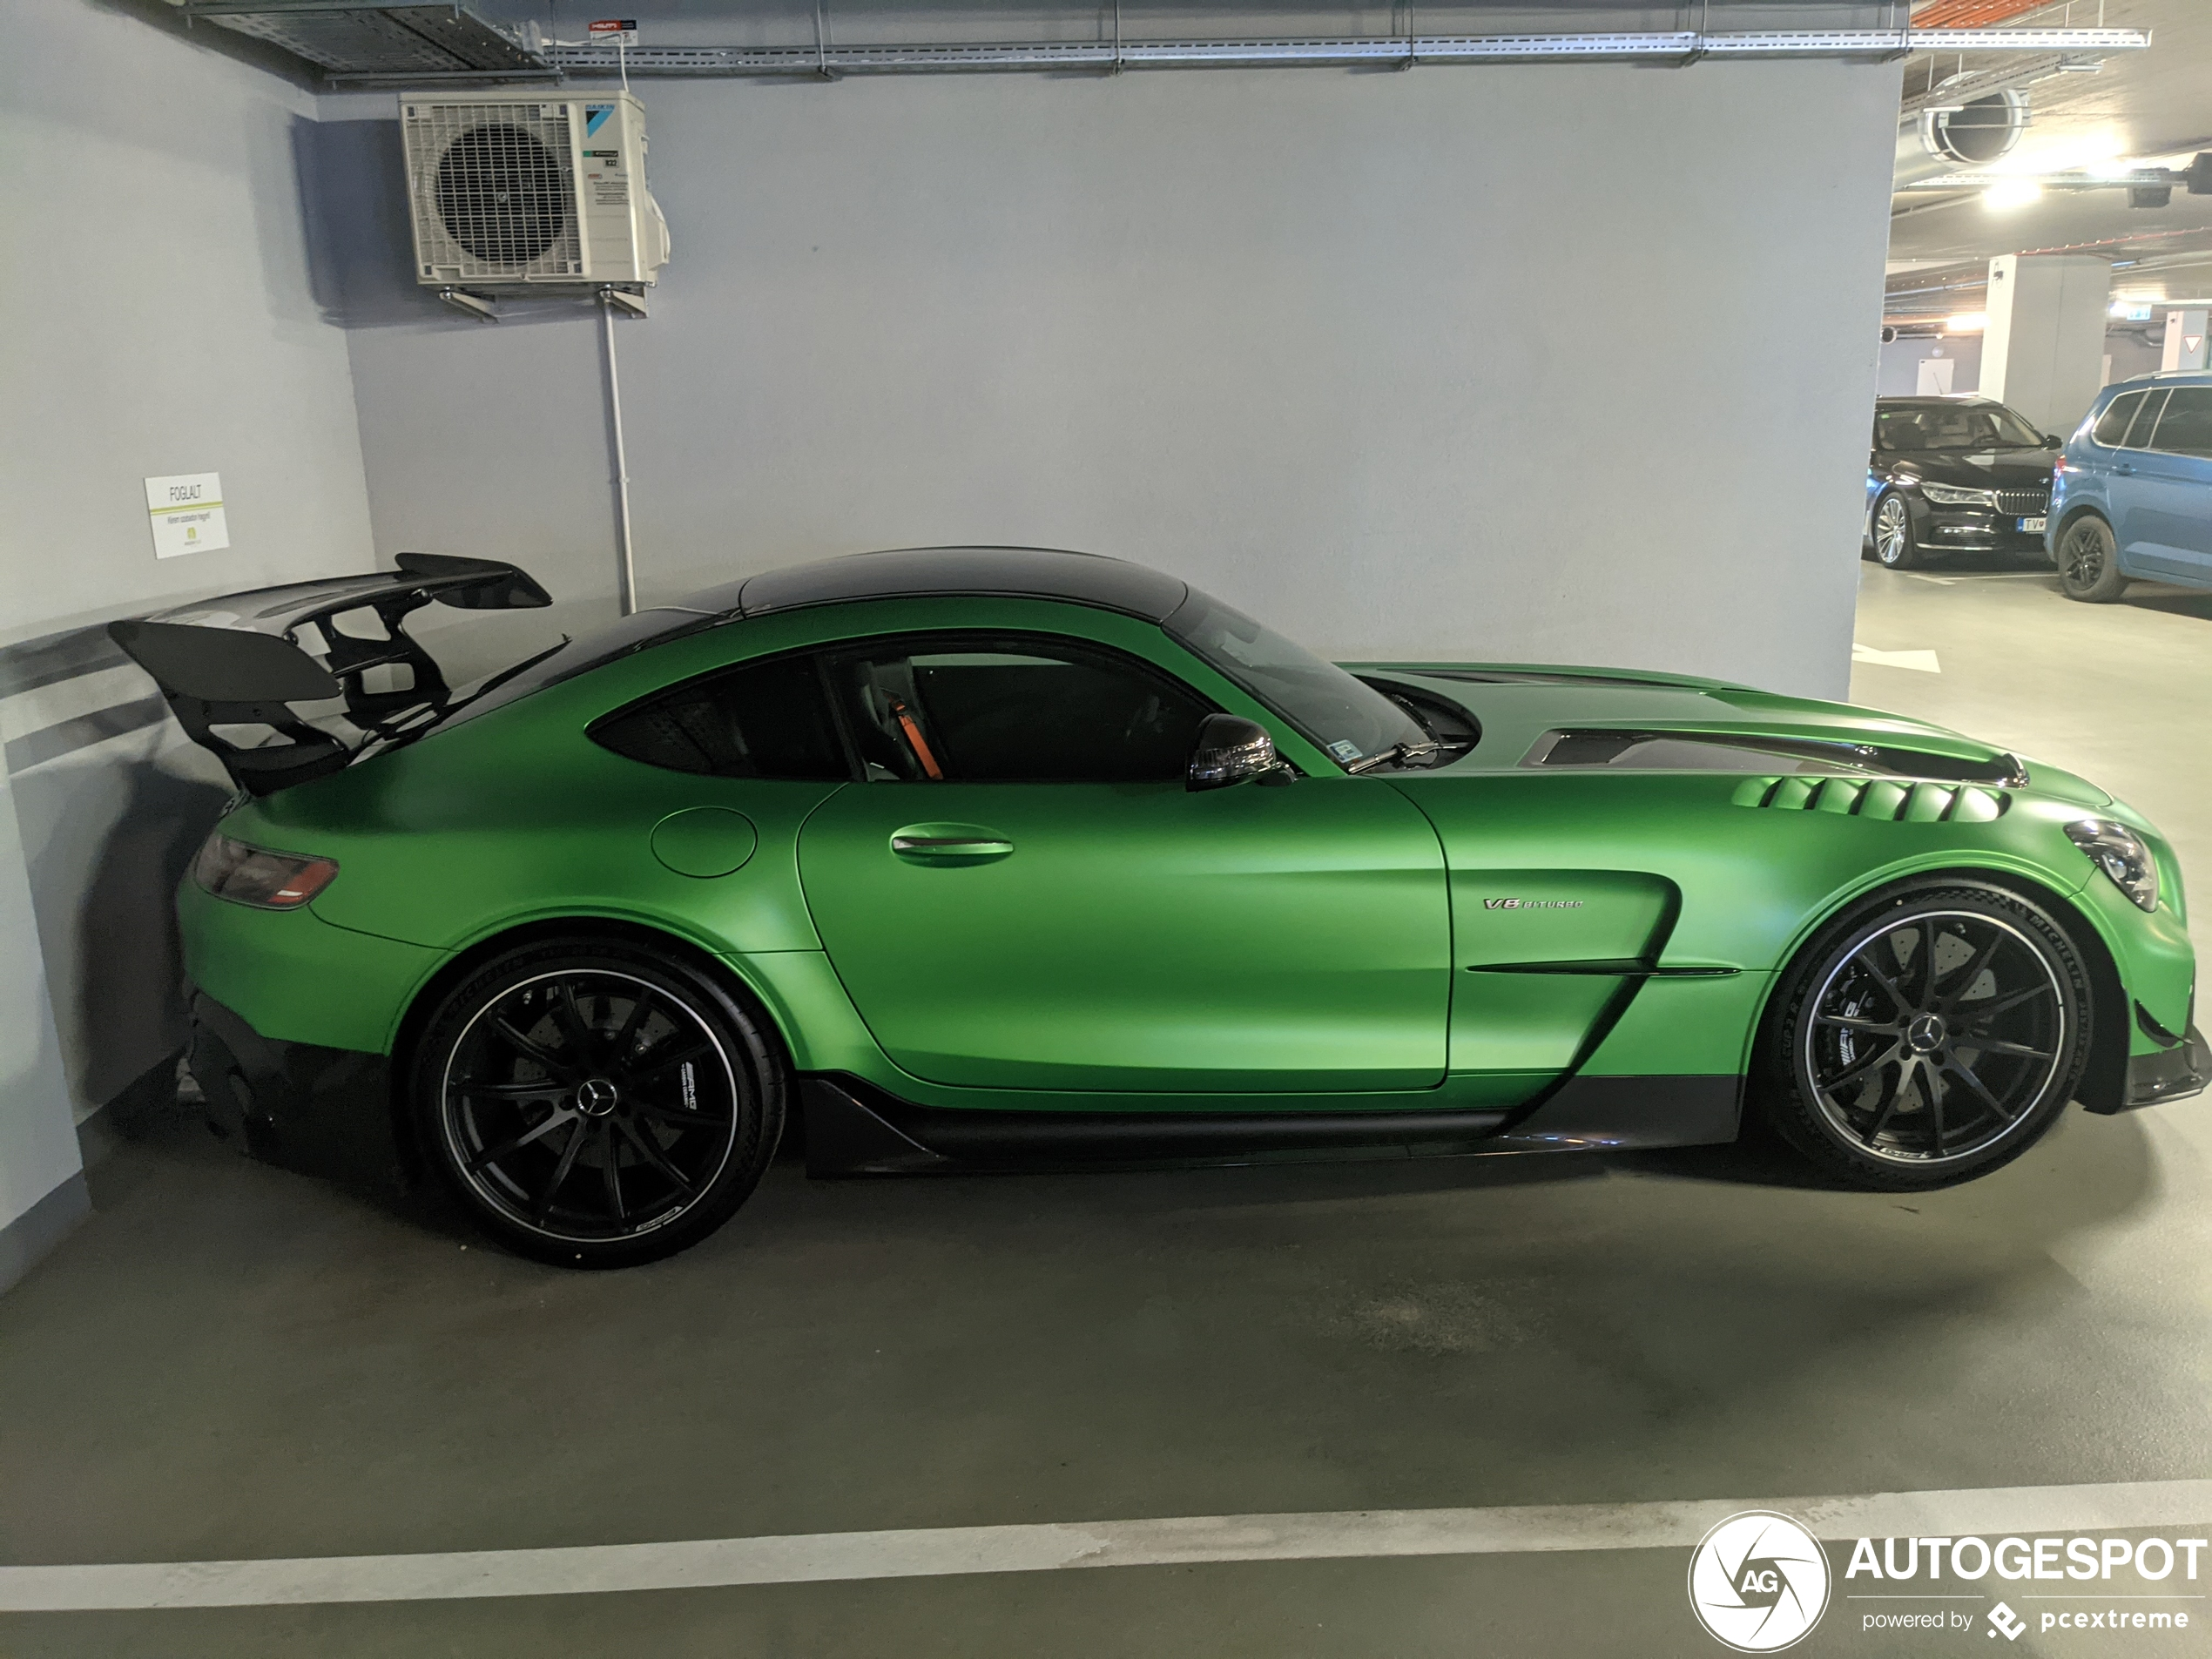 Mercedes-AMG GT Black Series in AMG Green Hell Magno is perfect